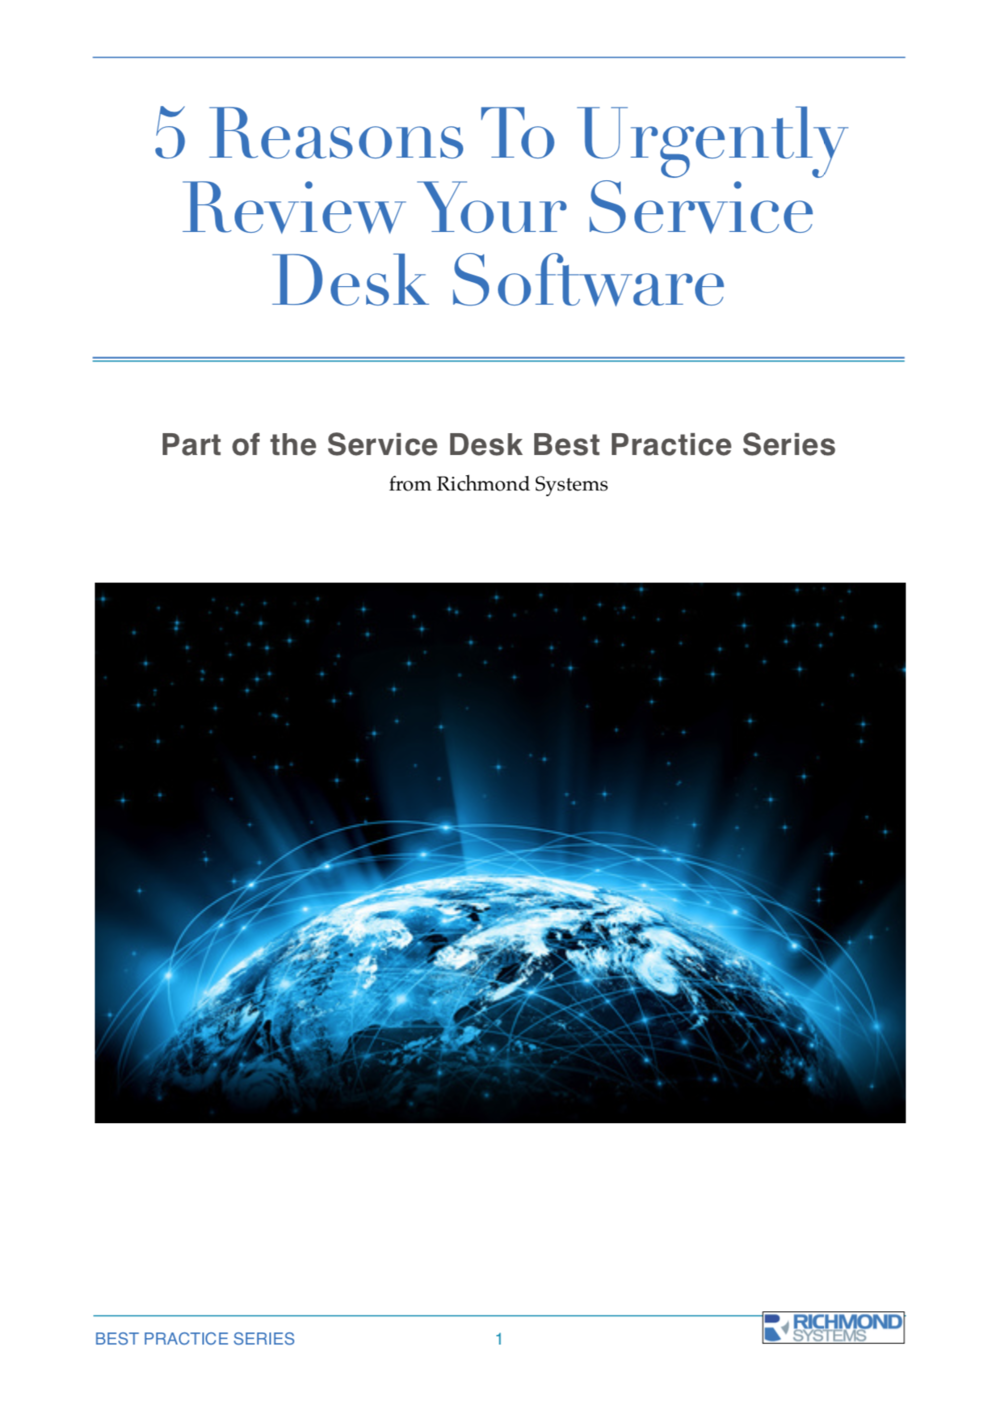 5 Reasons To Urgently Review Your Service Desk Software.png